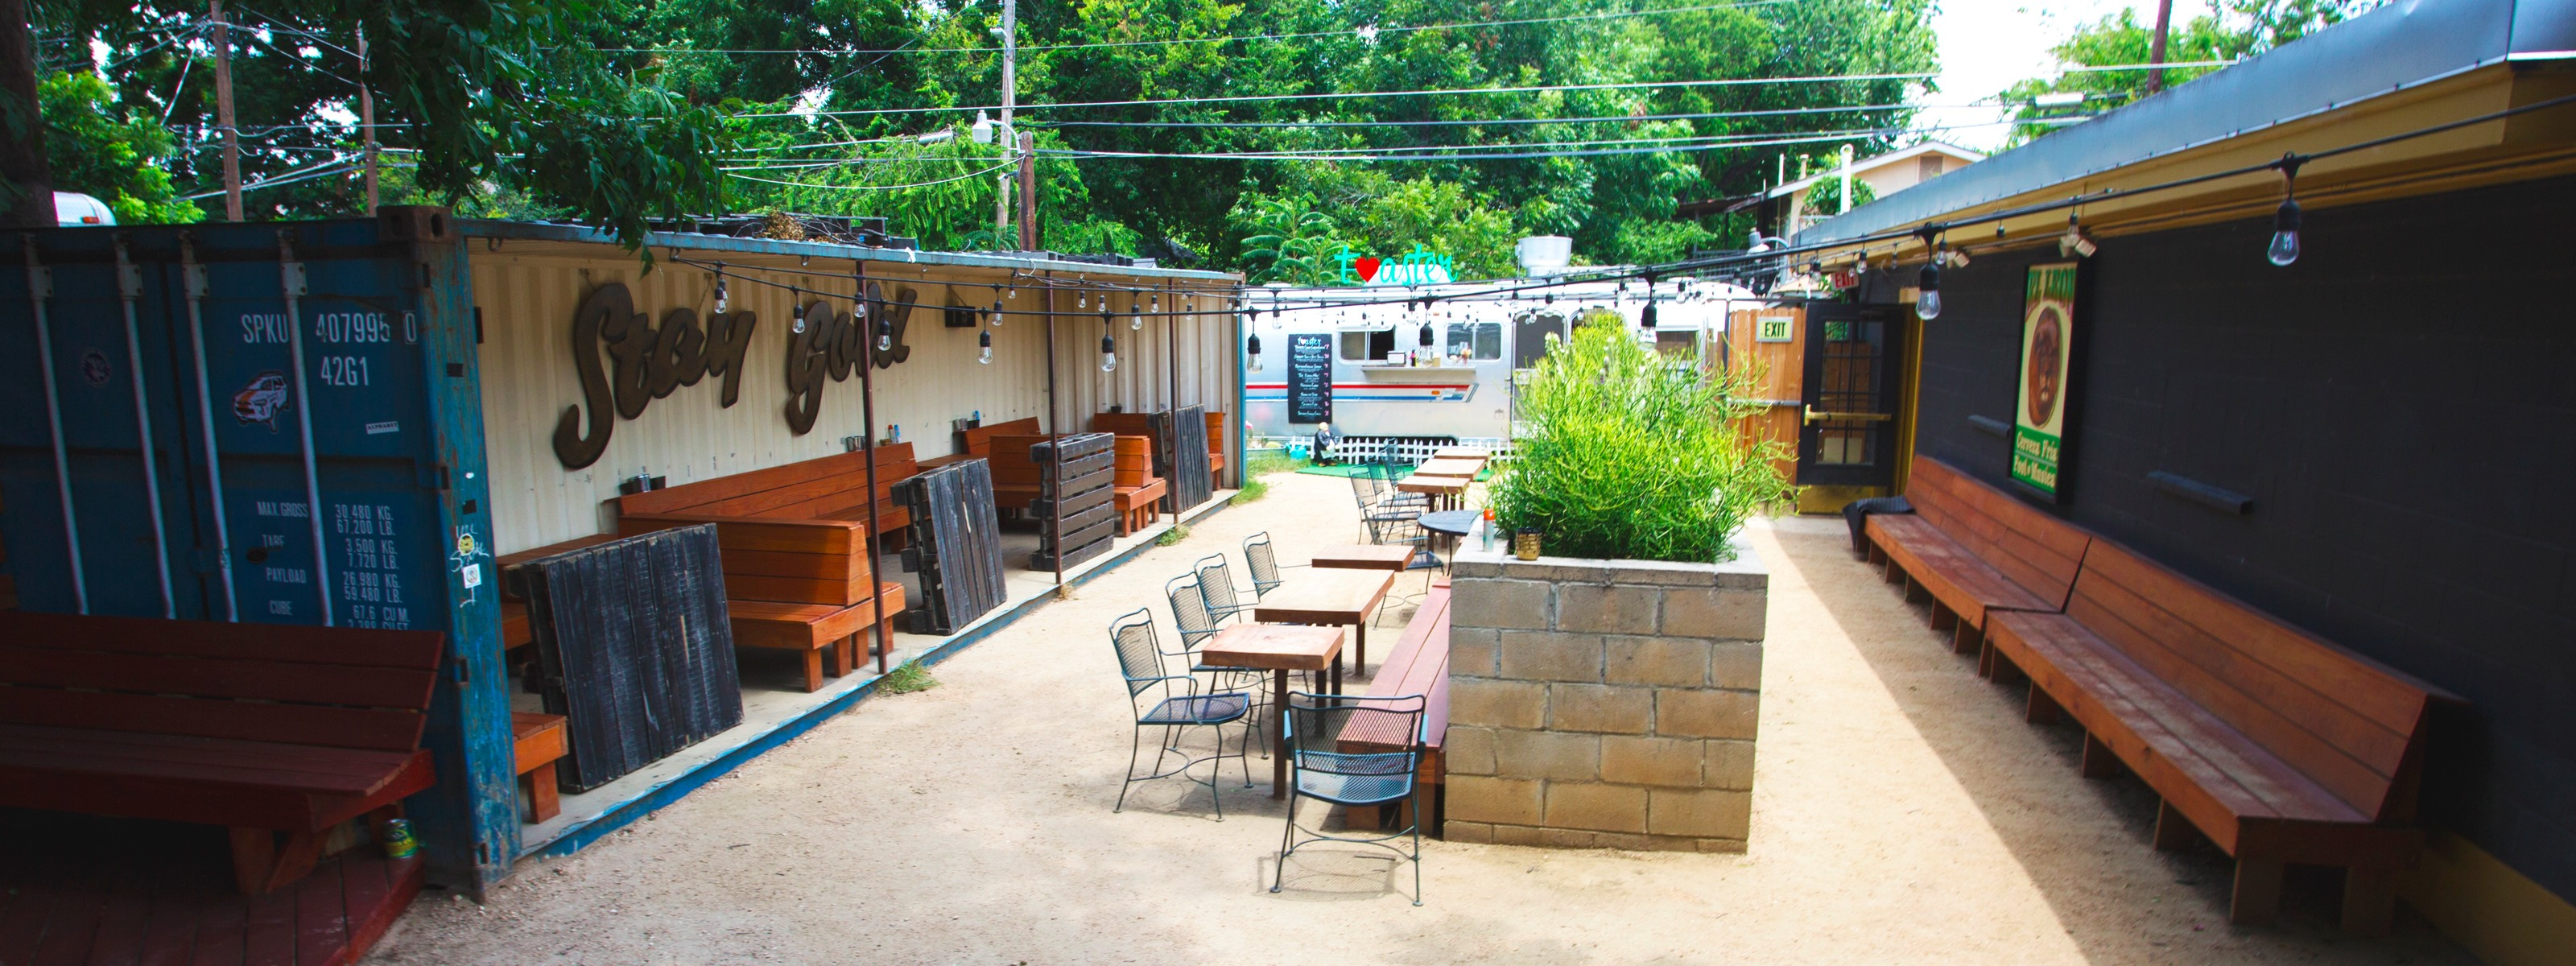 The Best Bars For First Dates In Austin - Austin - The ...